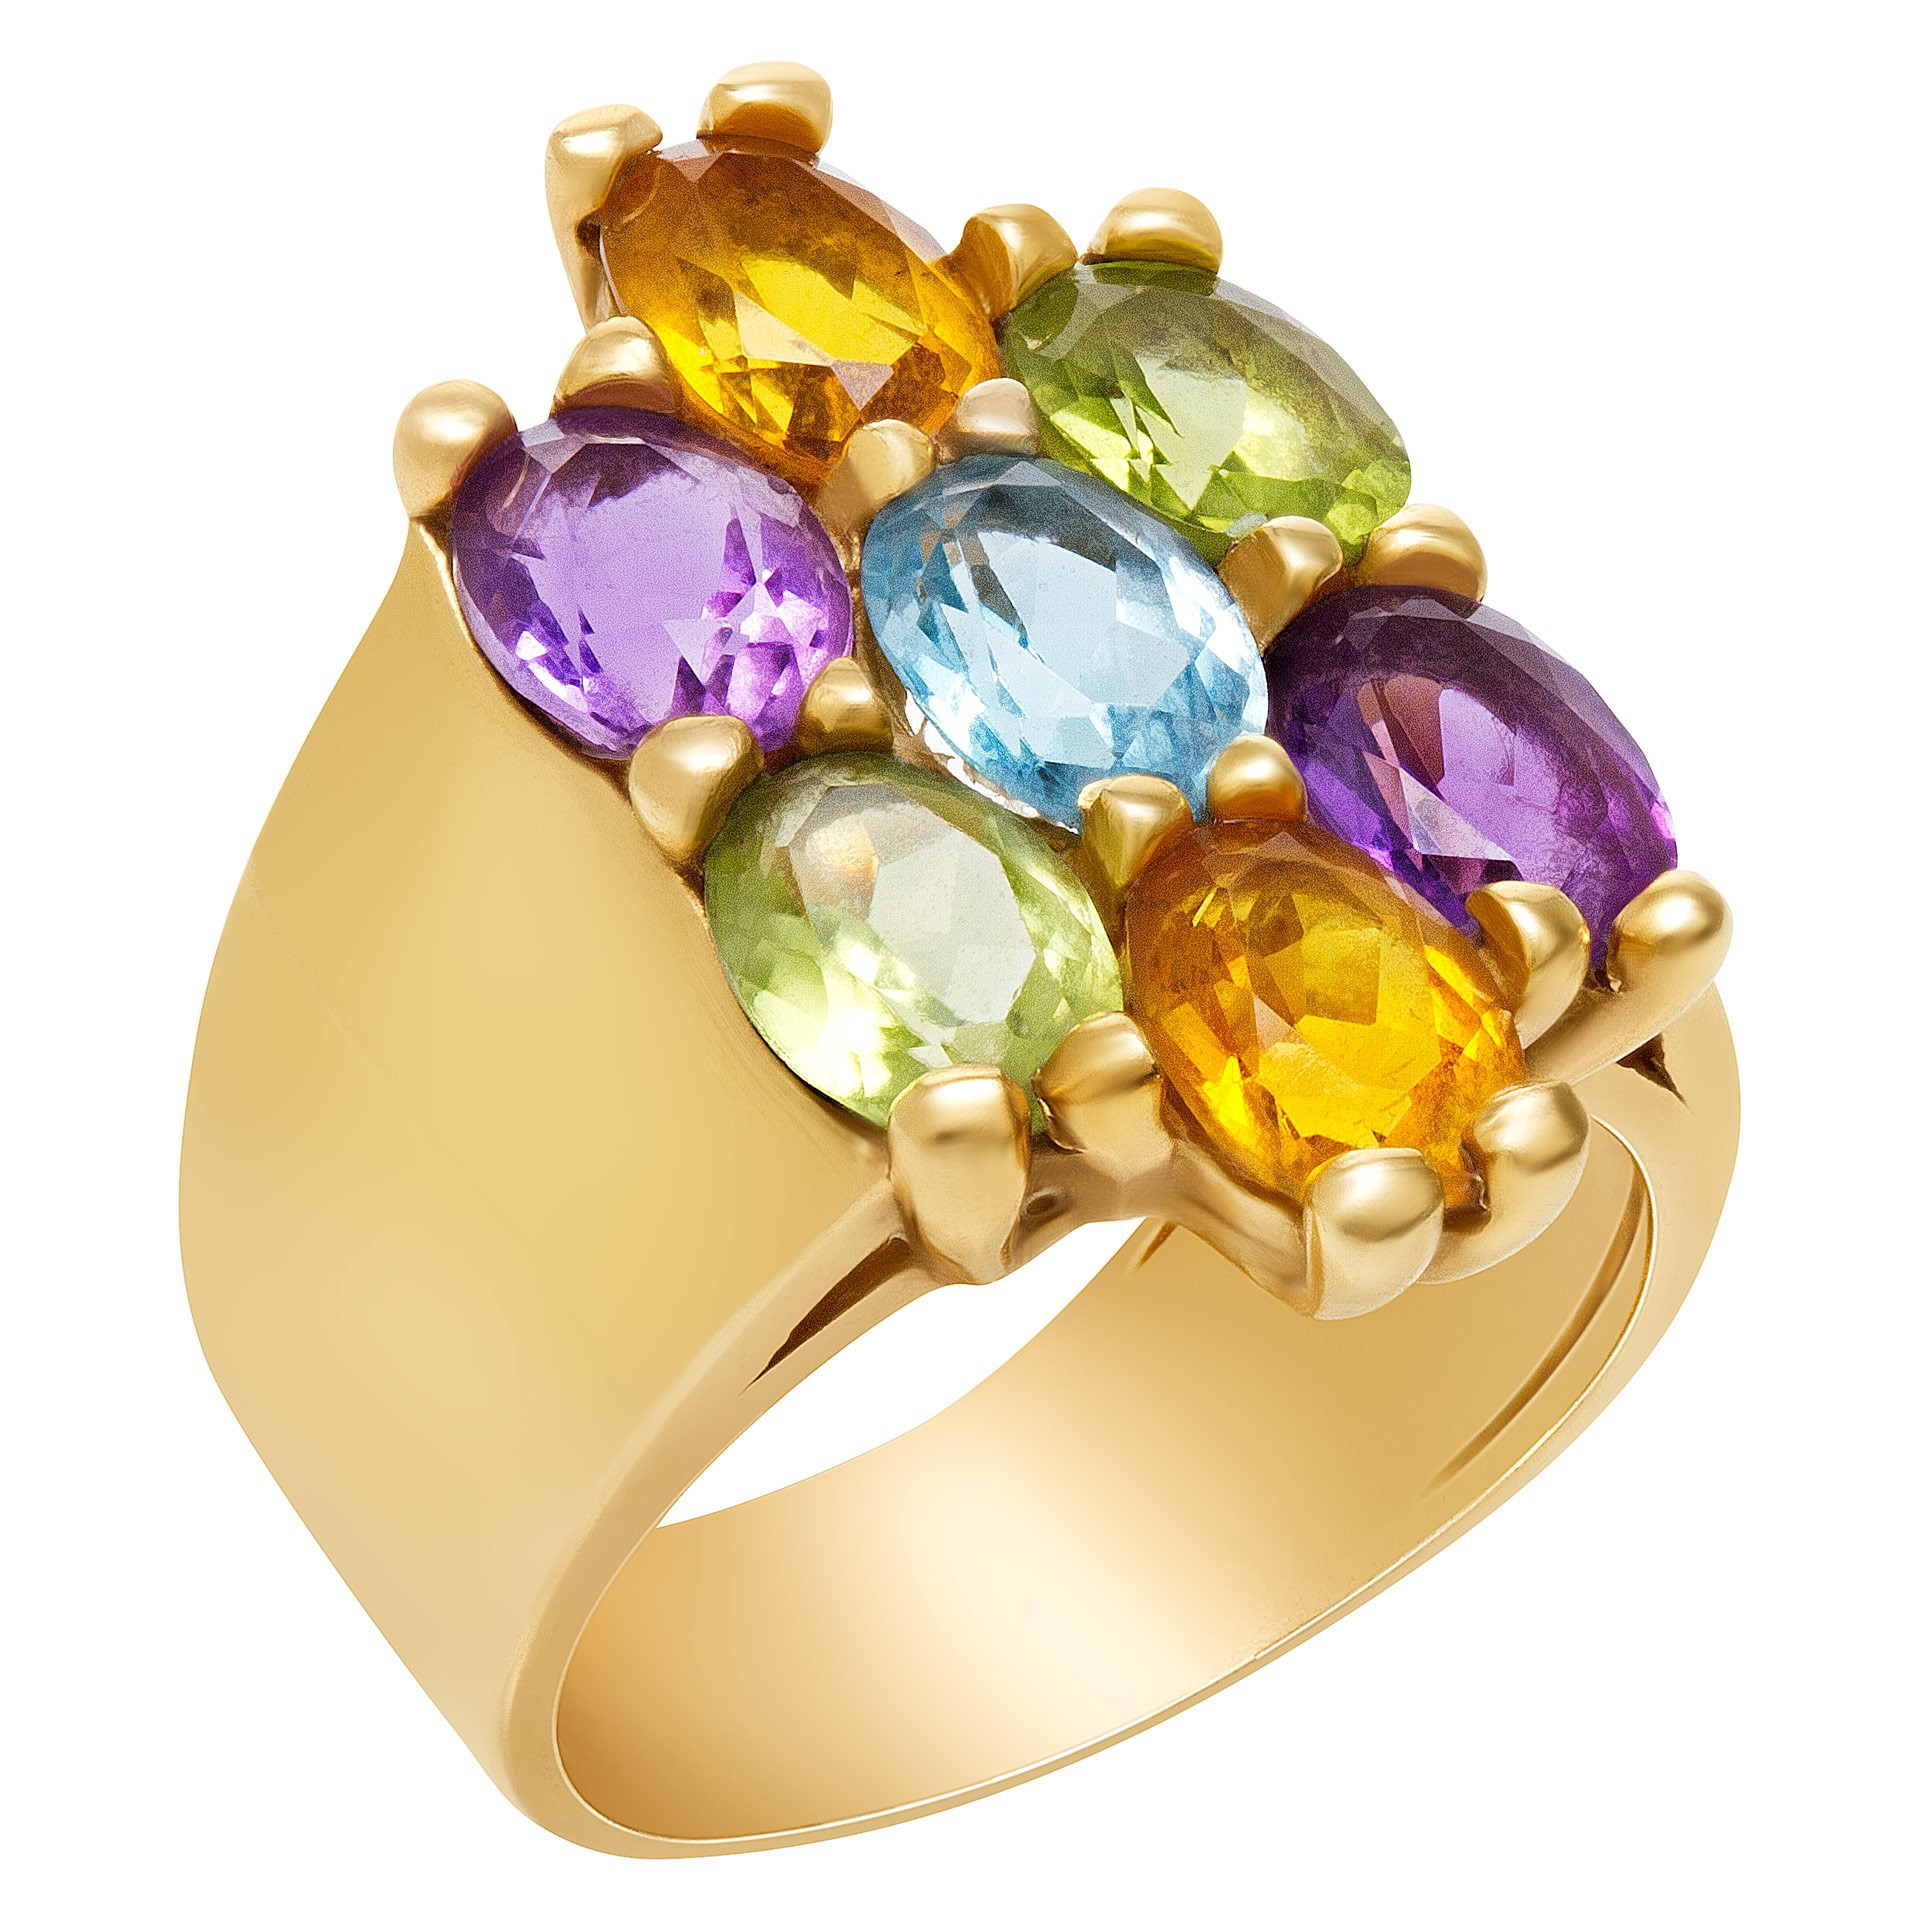 Fine Jewelry for Less than $1000: Semi-precious stones and yellow gold ring